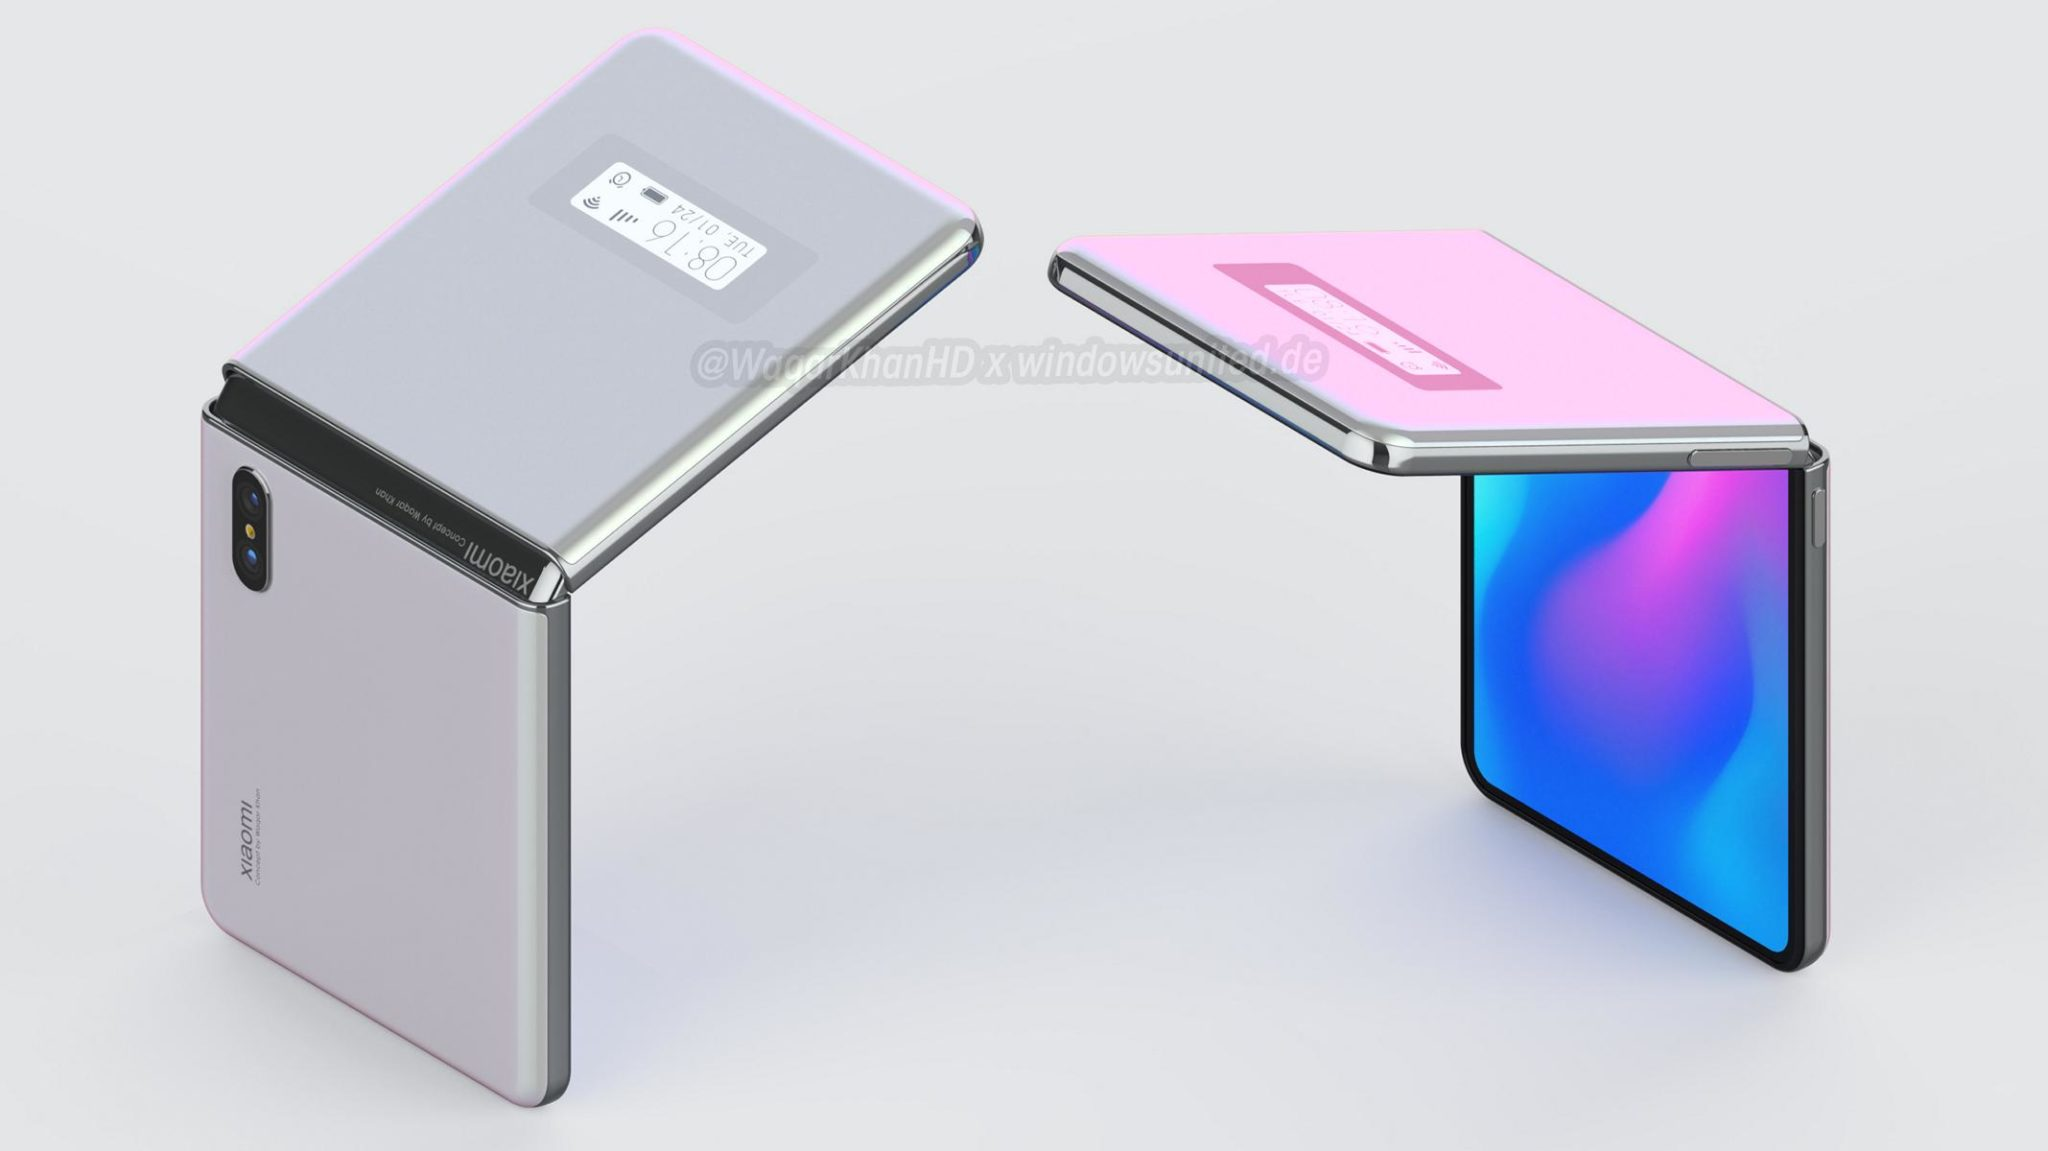 Xiaomi's unannounced clamshell foldable phone comes to life in a new design concept 4